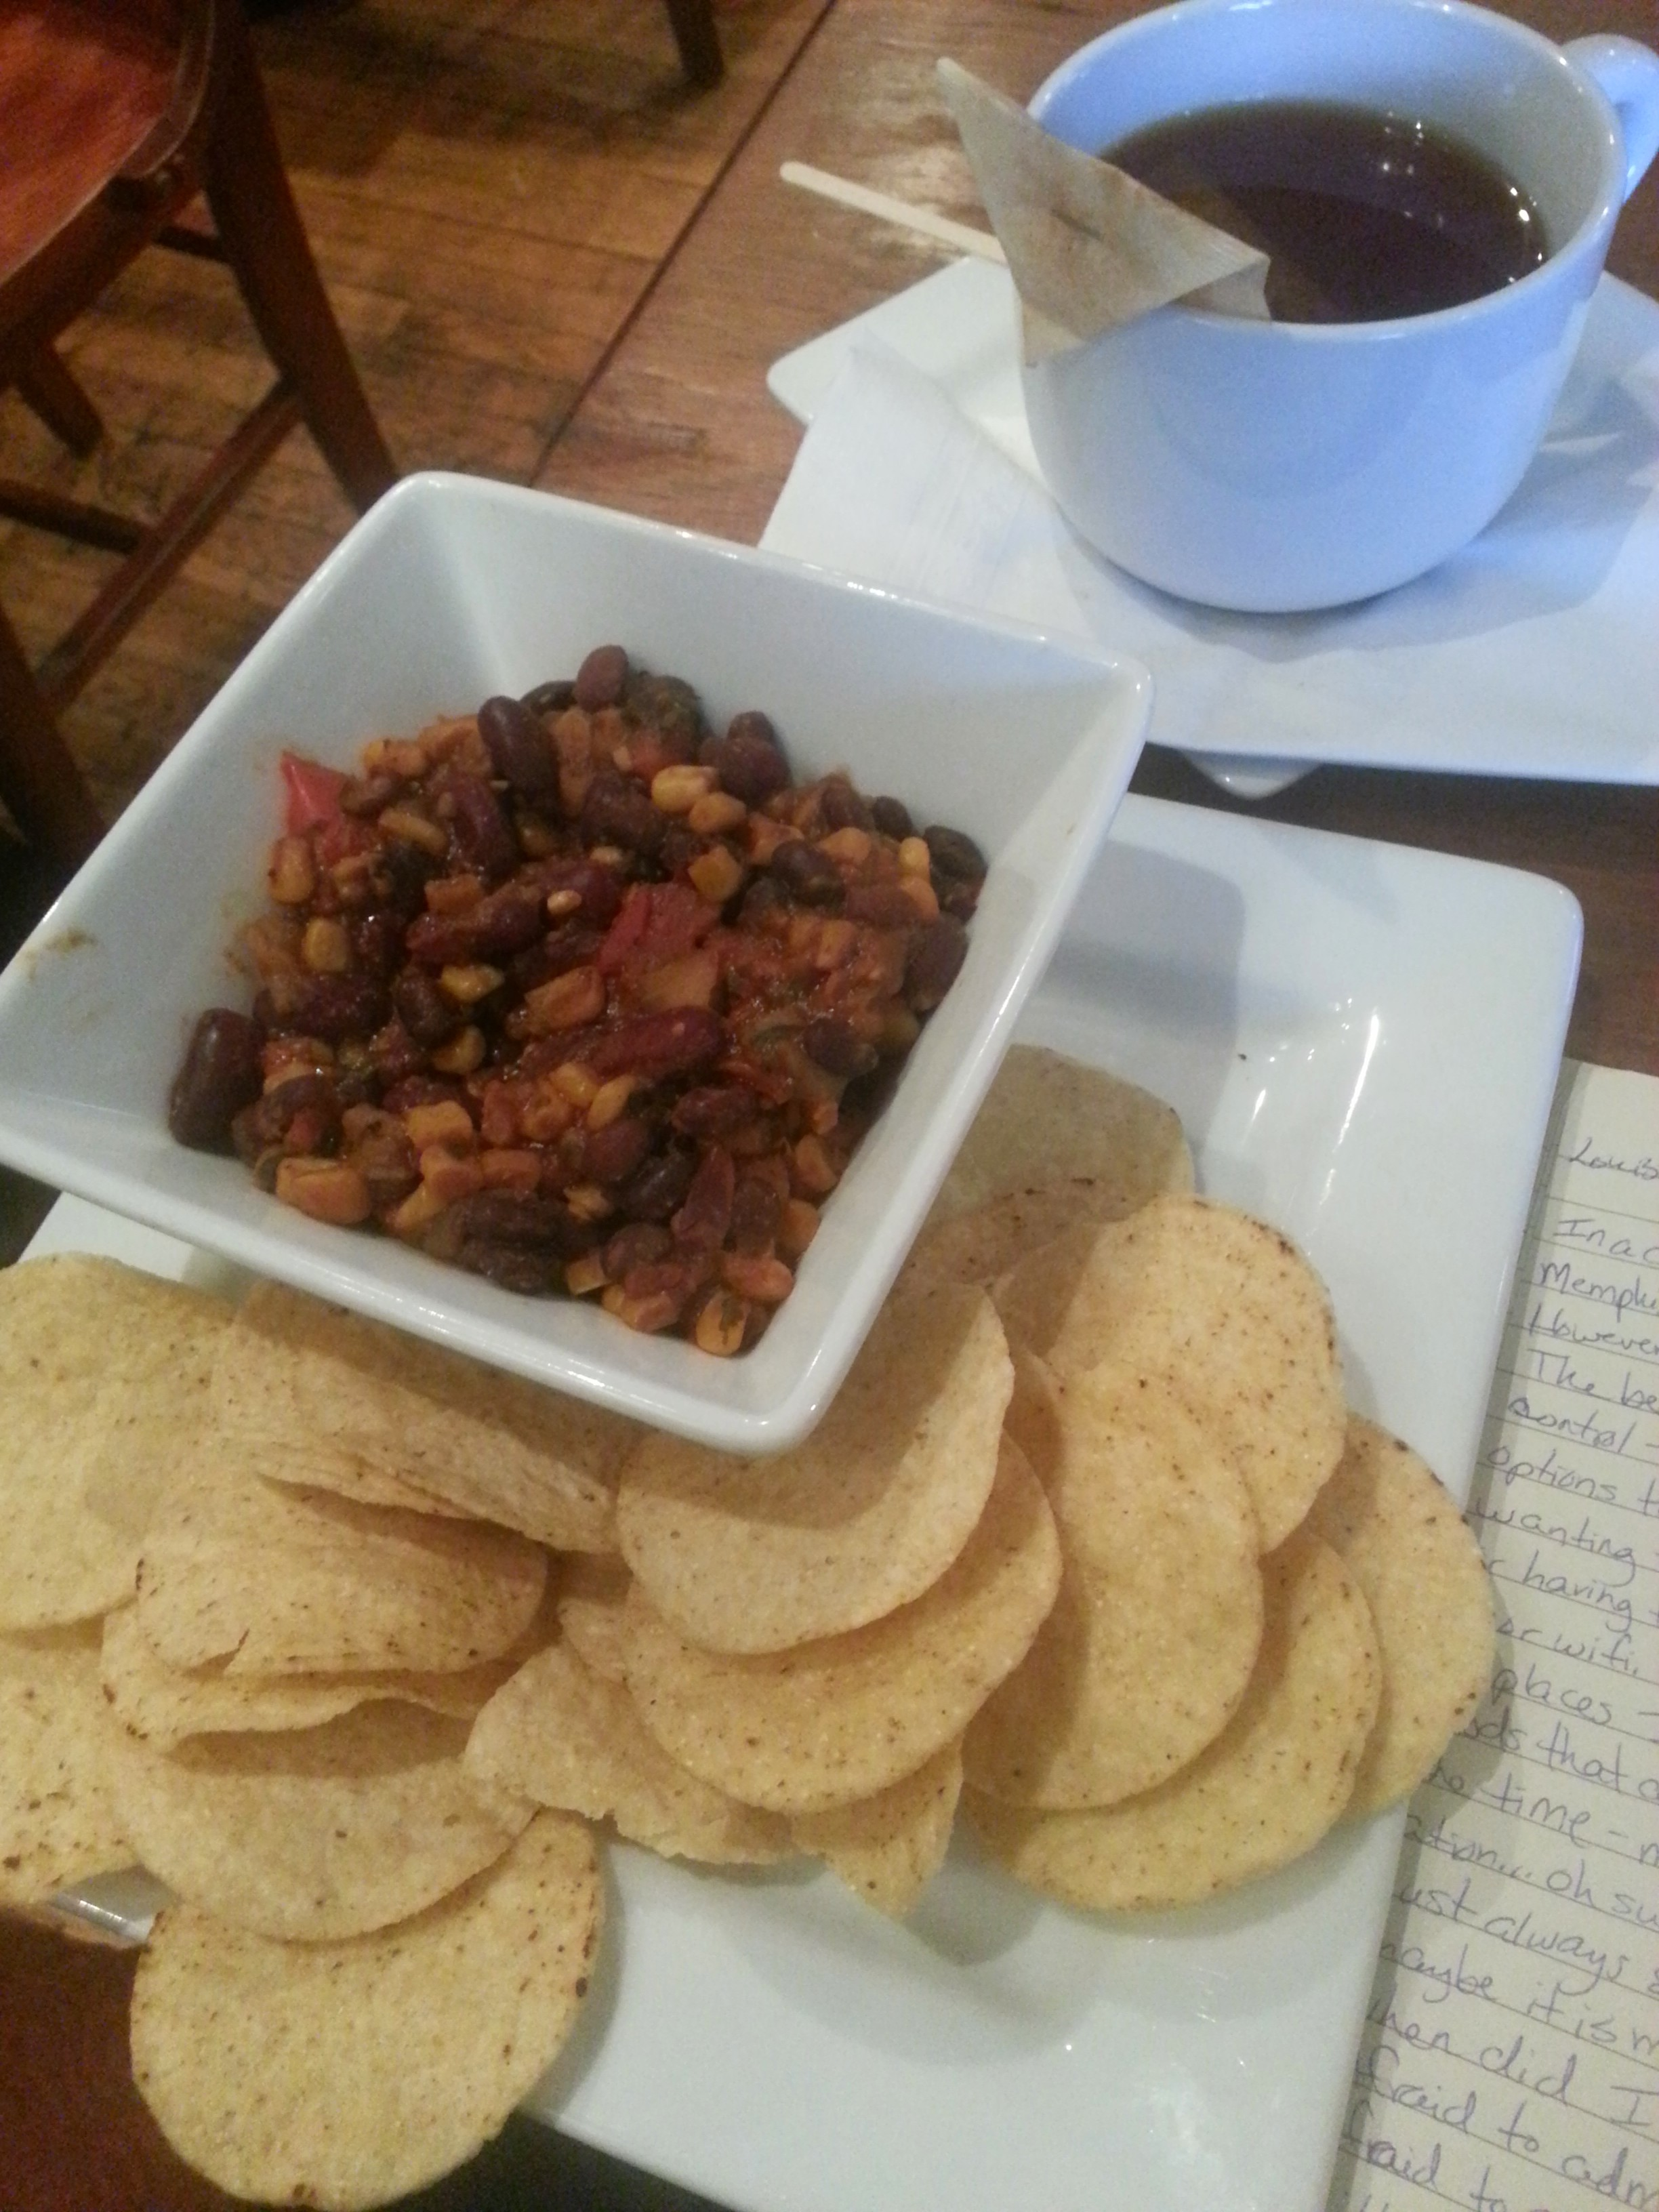 Vegan Chili and chips at Frothy Monkey in downtown Franklin, TN.